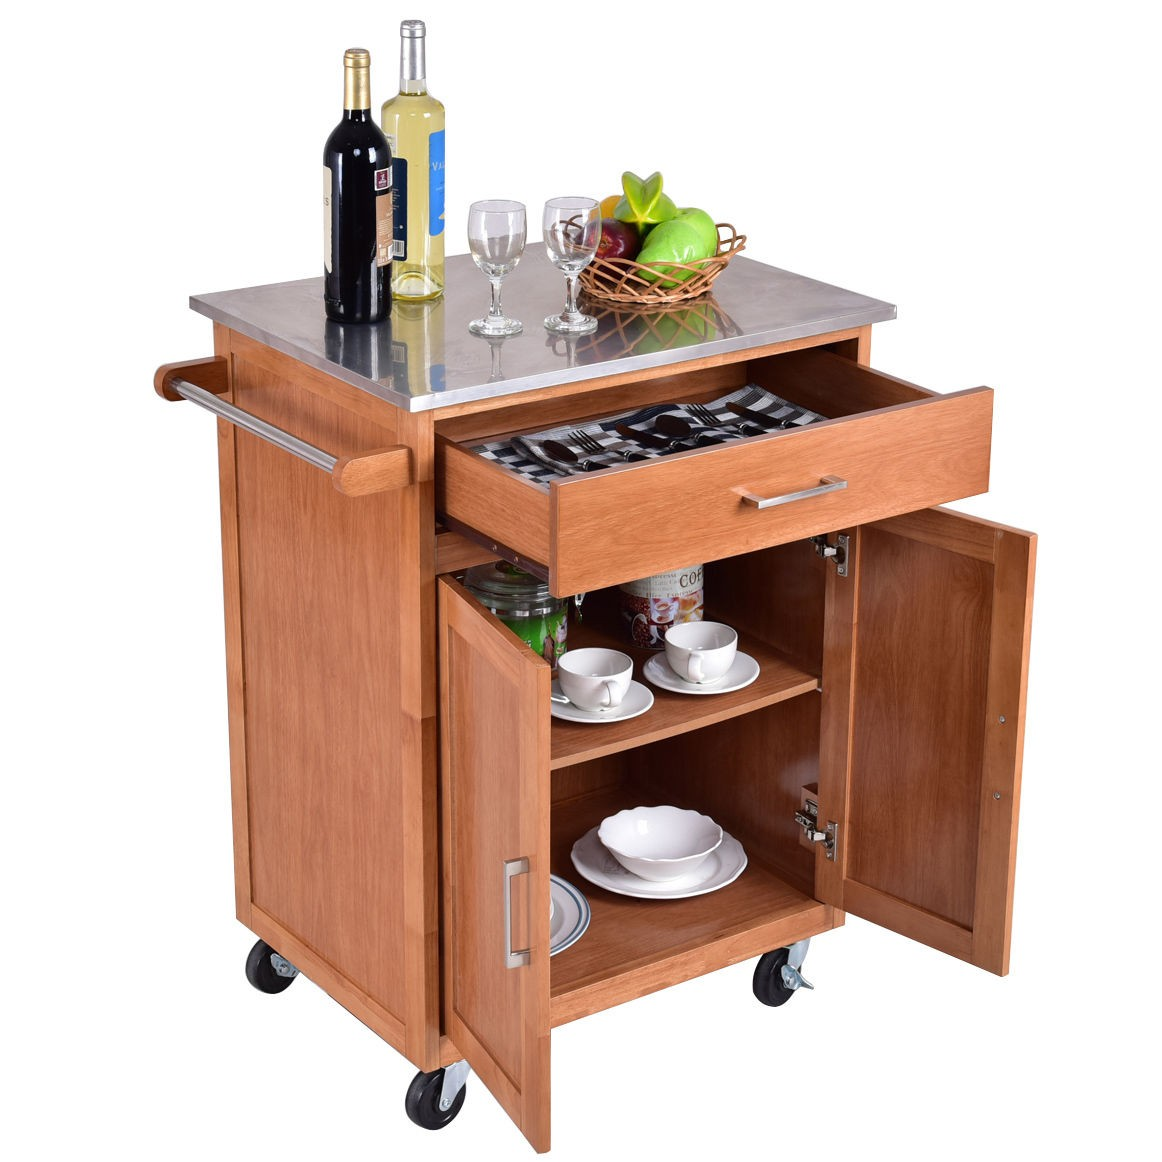 Details about Kitchen Wood Island Trolley Cart Stainless Wheel Rolling  Storage Cabinet Moving